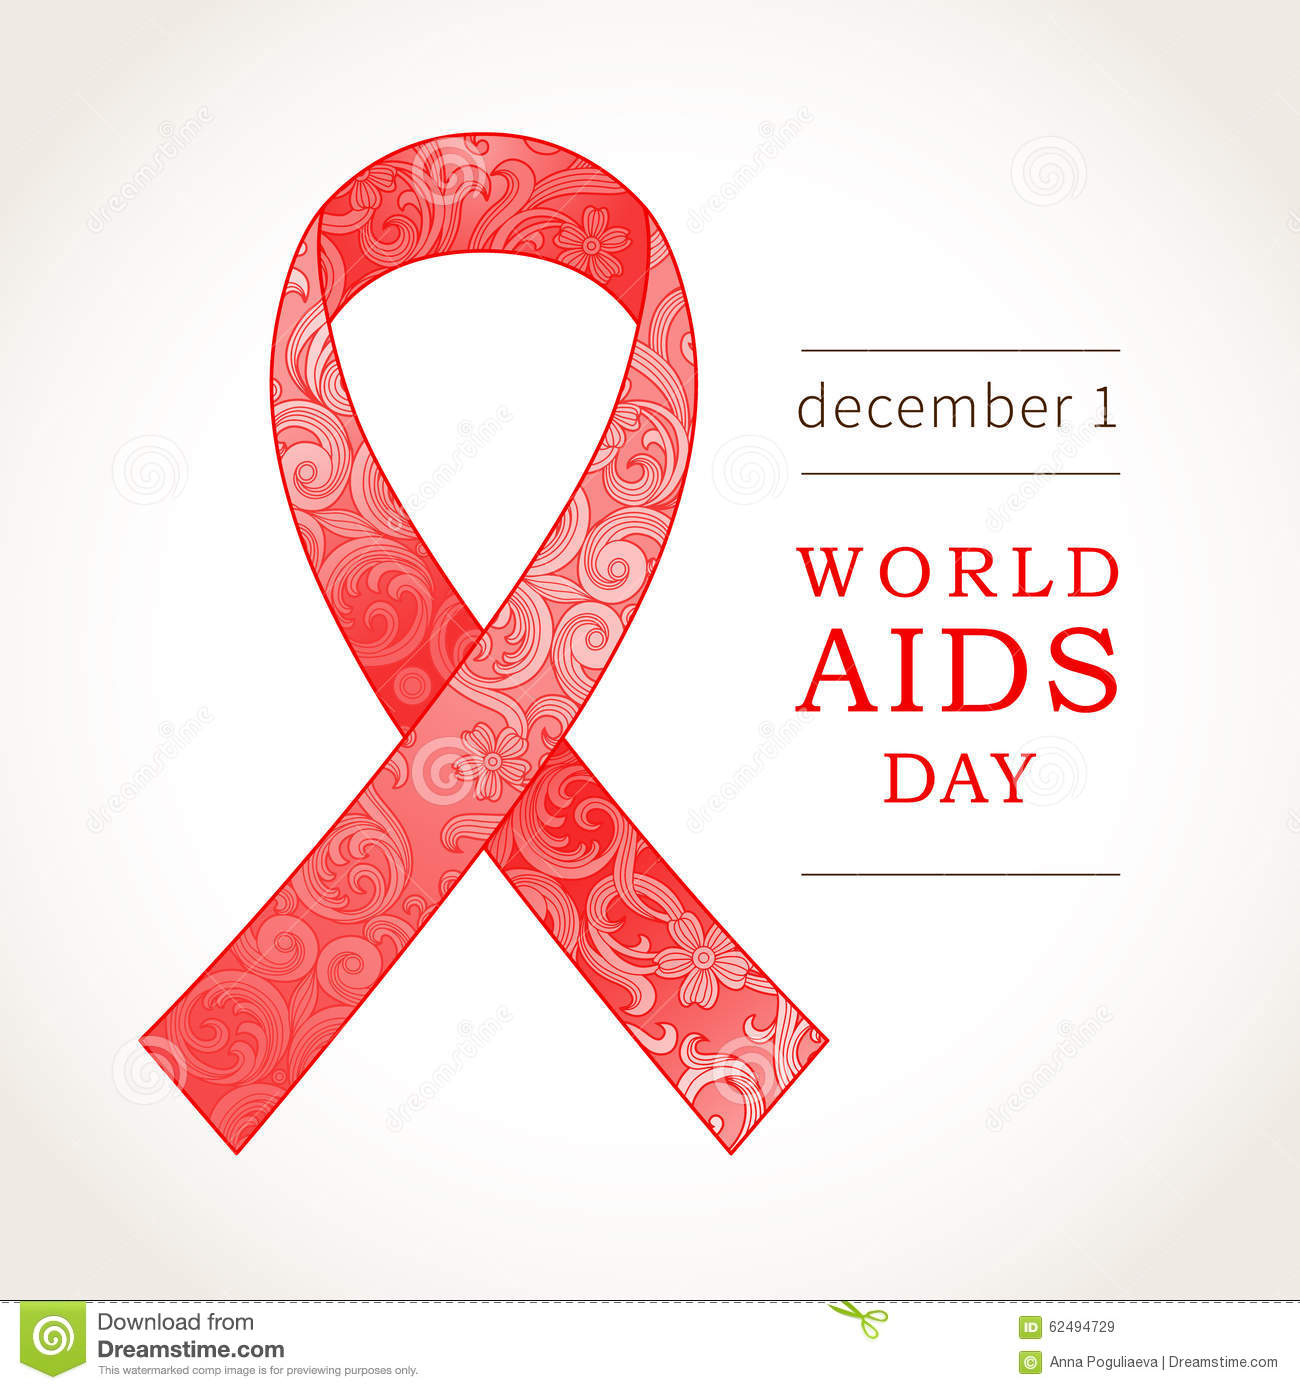 Symbol of World AIDS Day, December 1, Red ribbon.